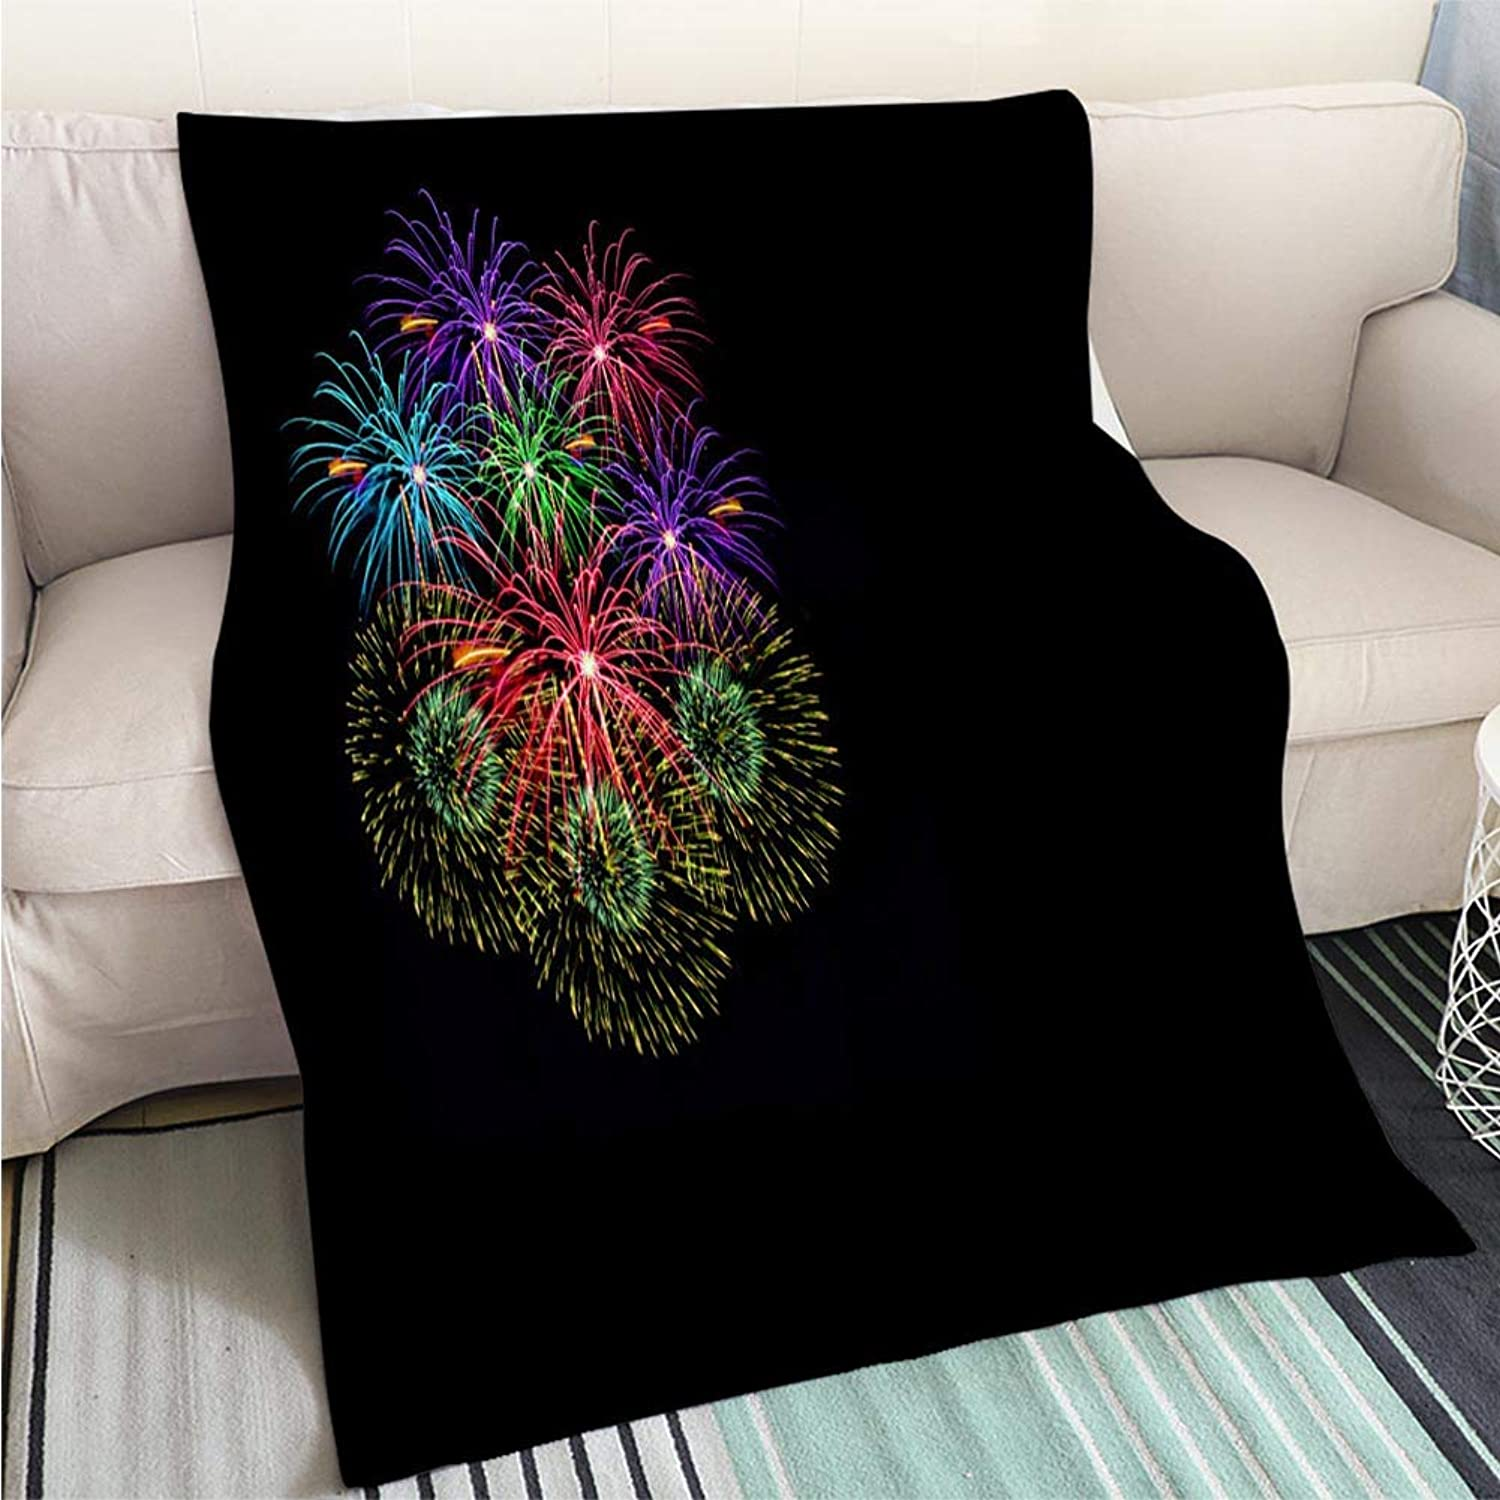 BEICICI Comforter Multicolor Bed or Couch colorful Fireworks Celebration and The Midnight Sky Background Living Room Bedroom Warm Blanket